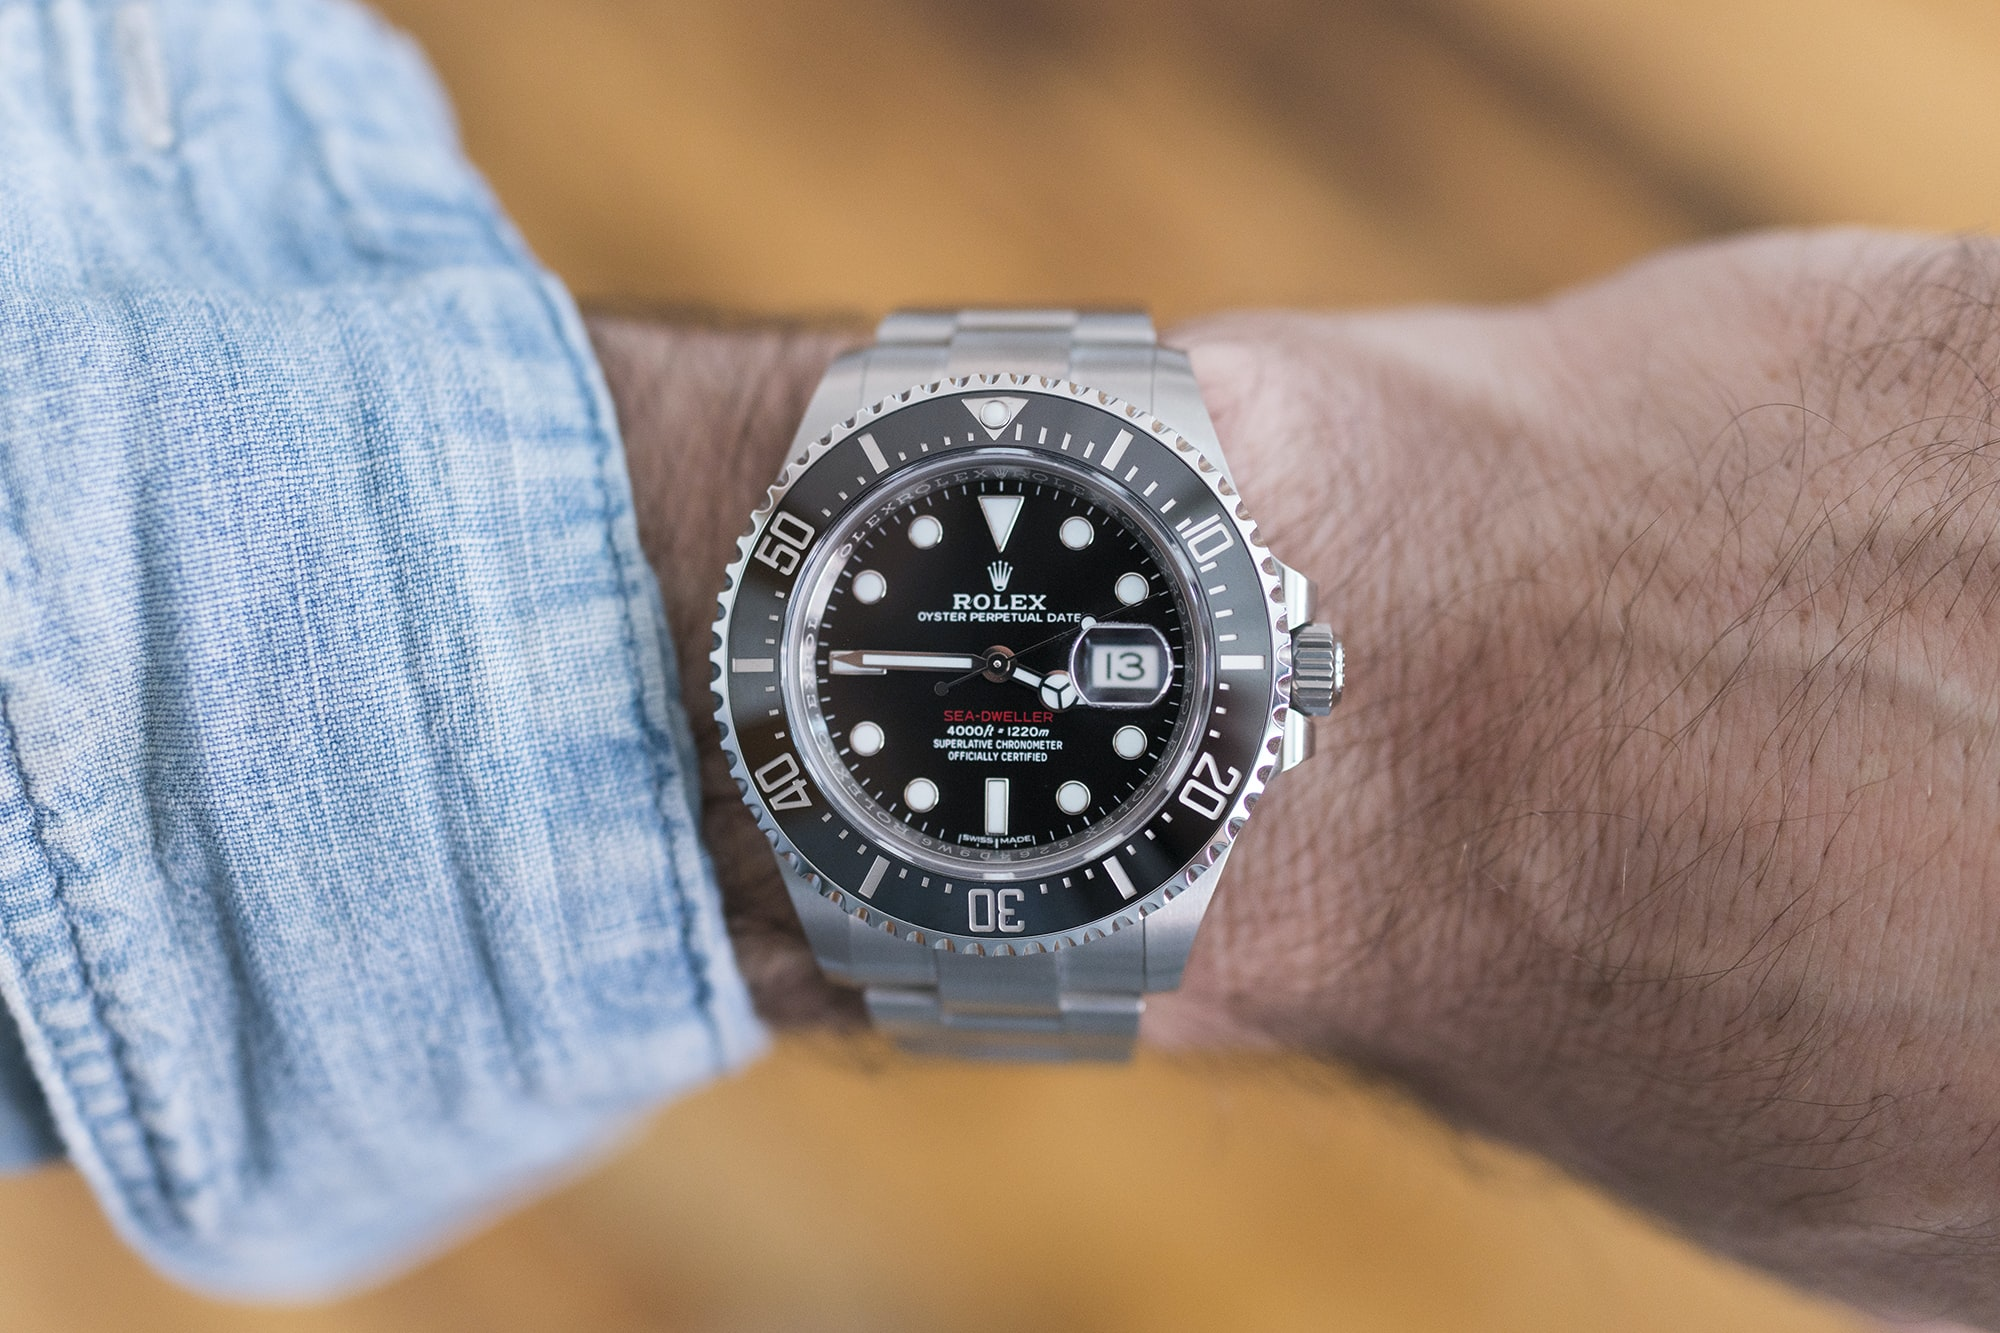 Rolex Sea-Dweller Ref. 126600 wrist shot A Week On The Wrist: The Rolex Sea-Dweller Reference 126600 A Week On The Wrist: The Rolex Sea-Dweller Reference 126600  DSC00038 copy